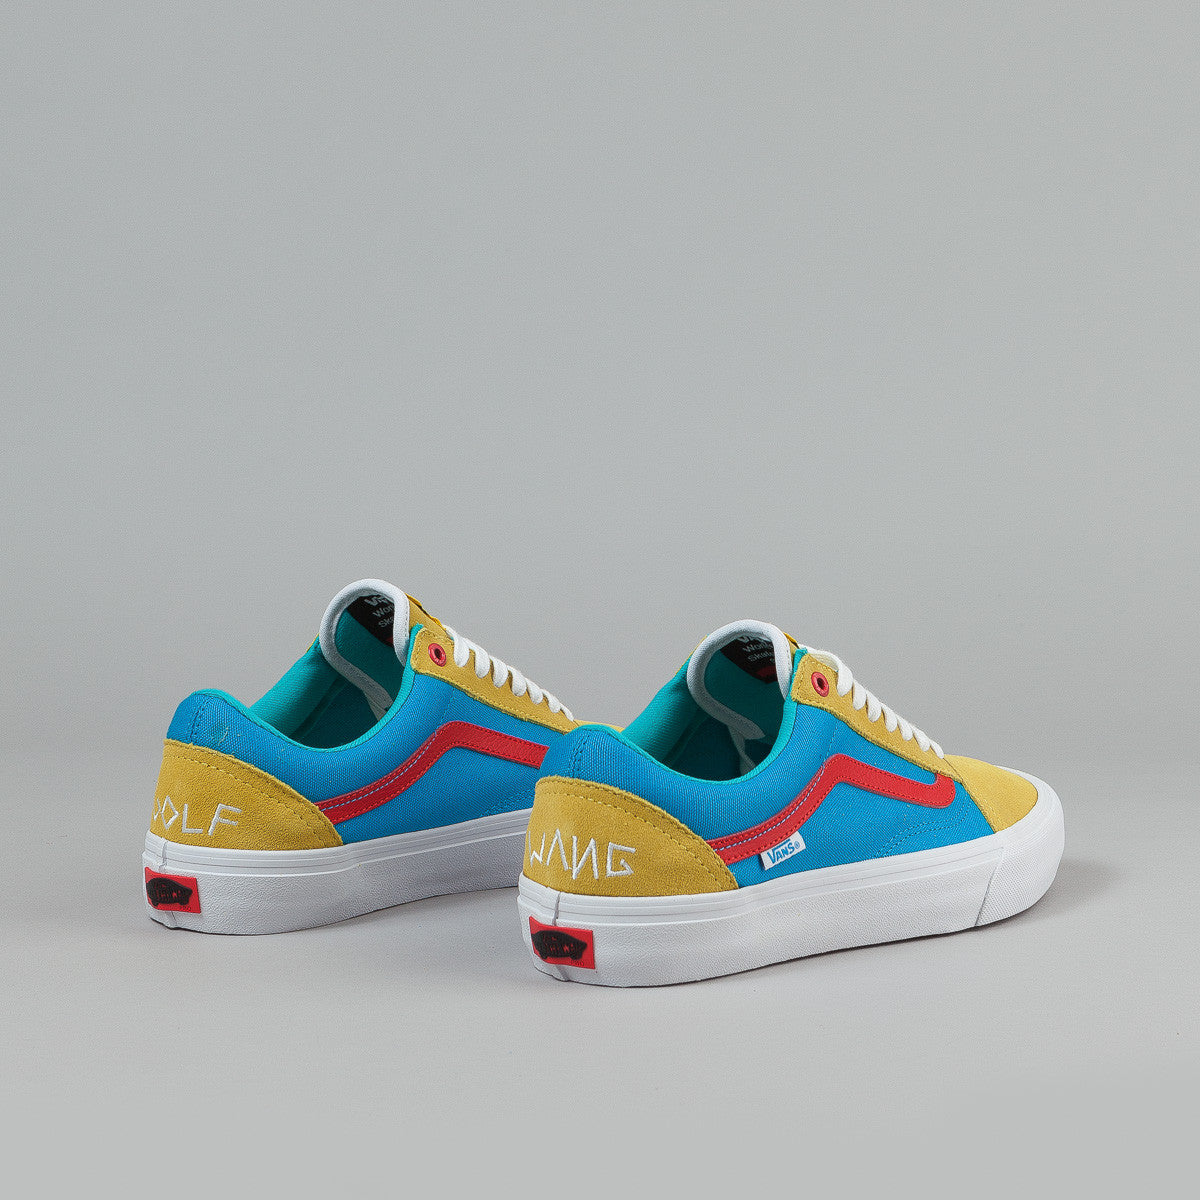 vans old skool pro shoes golf wang yellow blue red. Black Bedroom Furniture Sets. Home Design Ideas